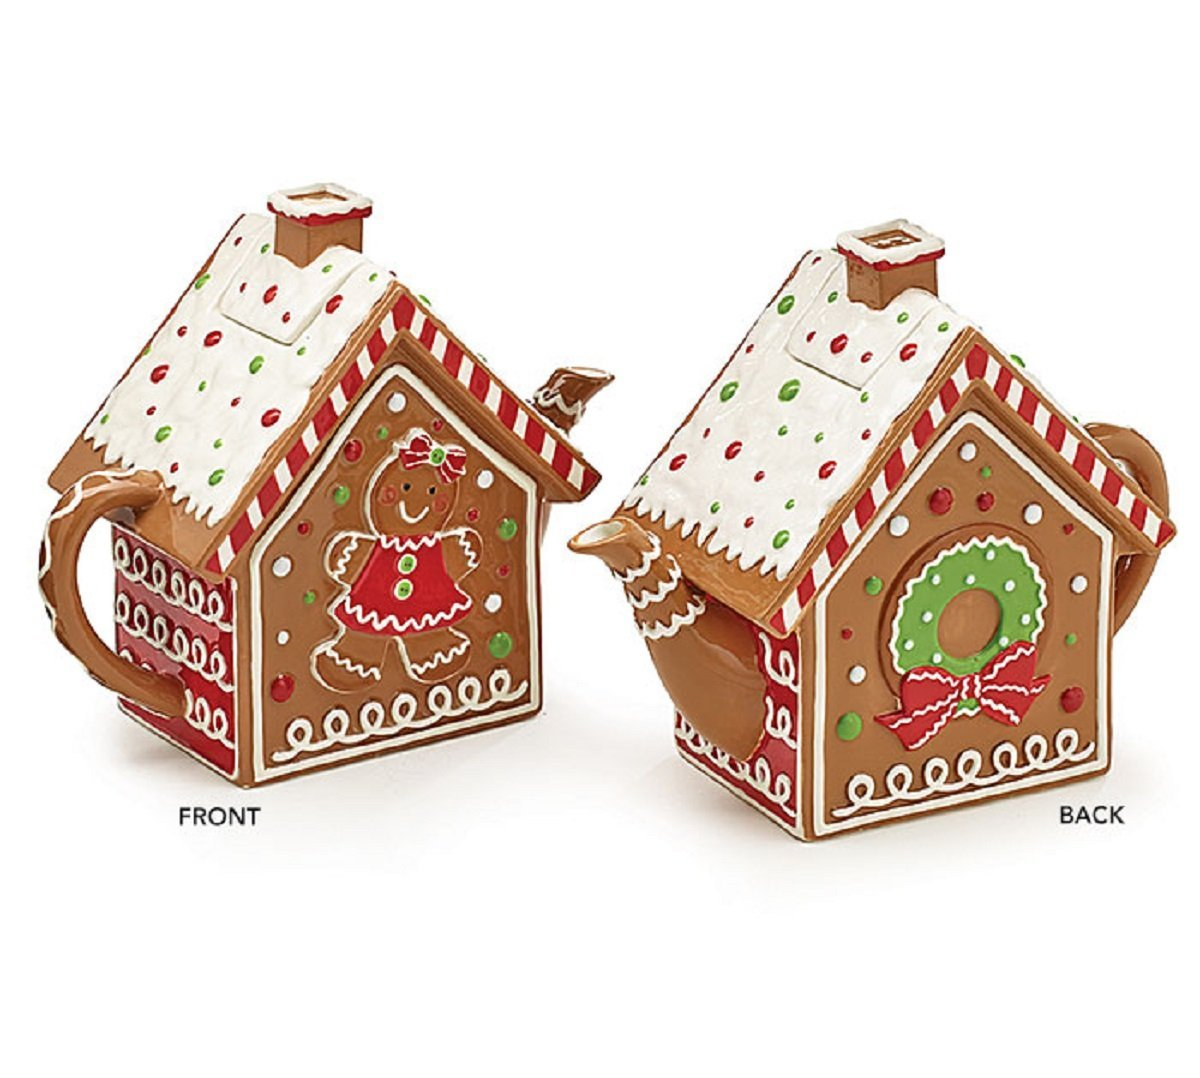 Gingerbread House with Snow Covered Roof for Cookie Storage